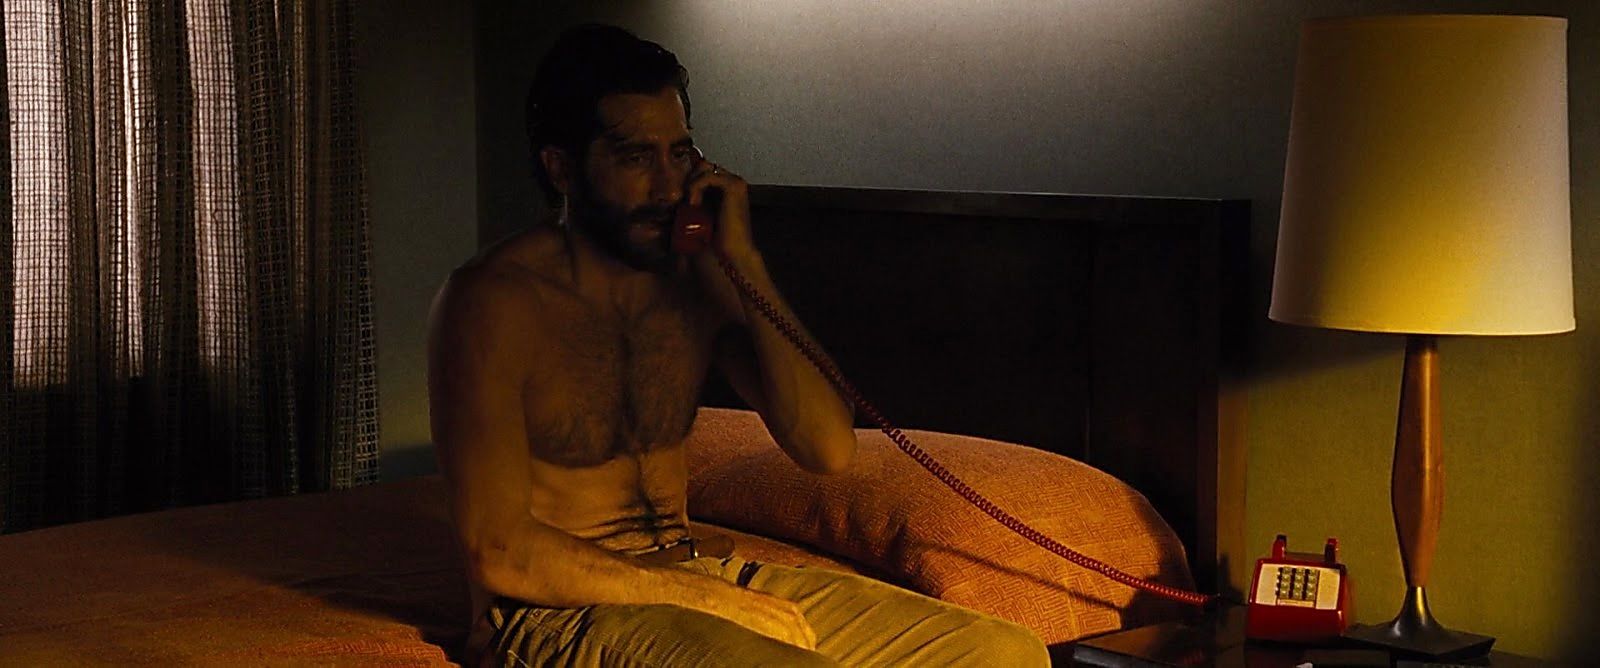 Jake Gyllenhaal latest sexy shirtless scene February 7, 2017, 10am